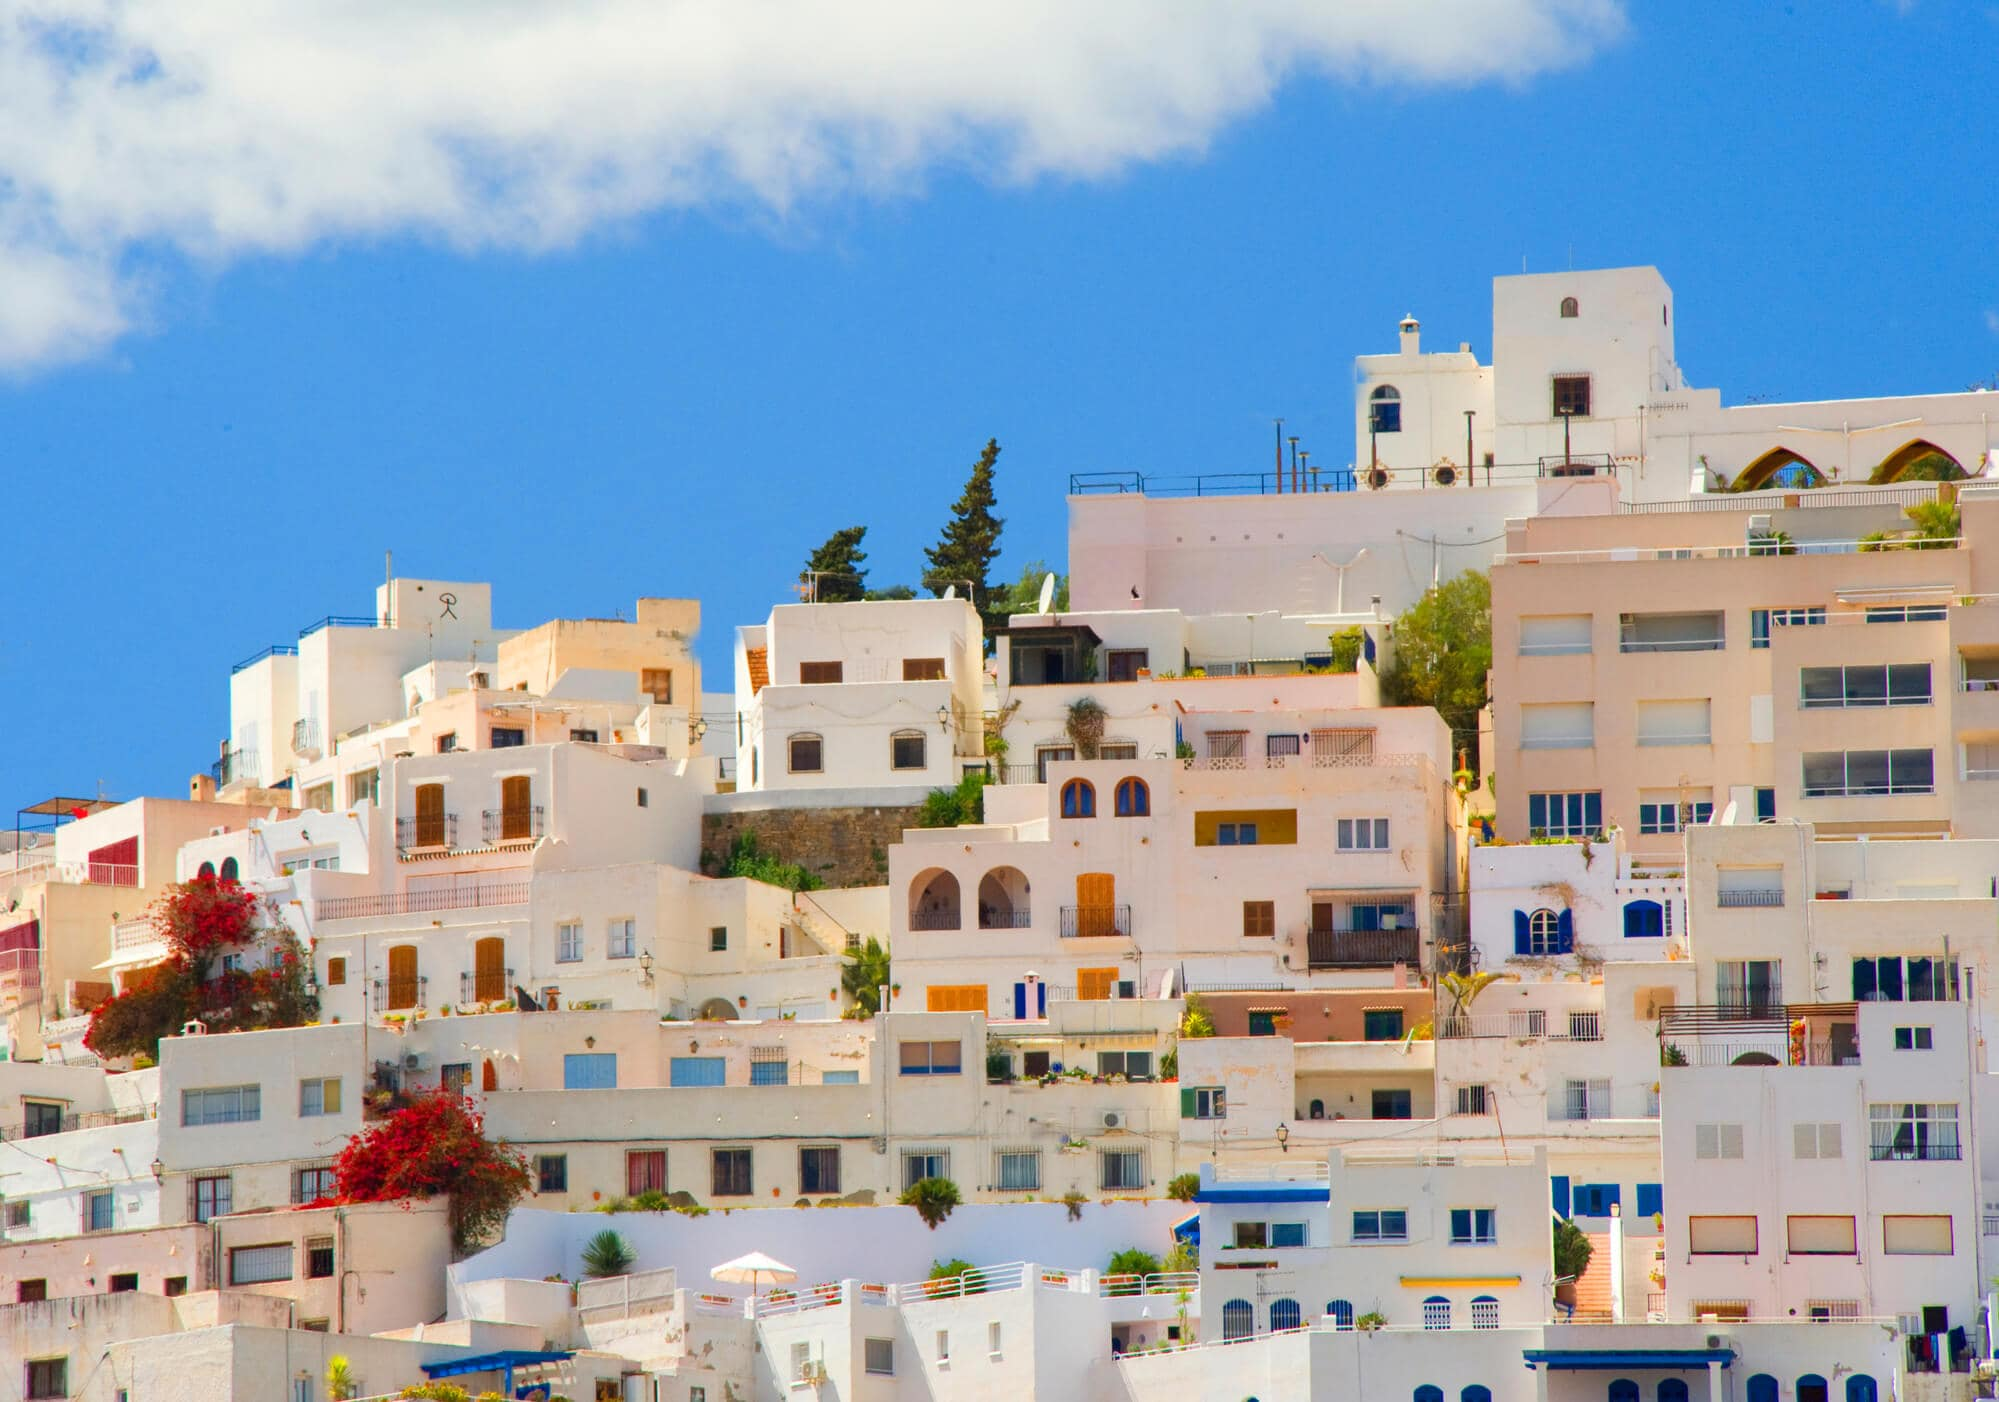 White houses with different colored doors on top of a hill in Mojácar Pueblo in Andalucía, Spain